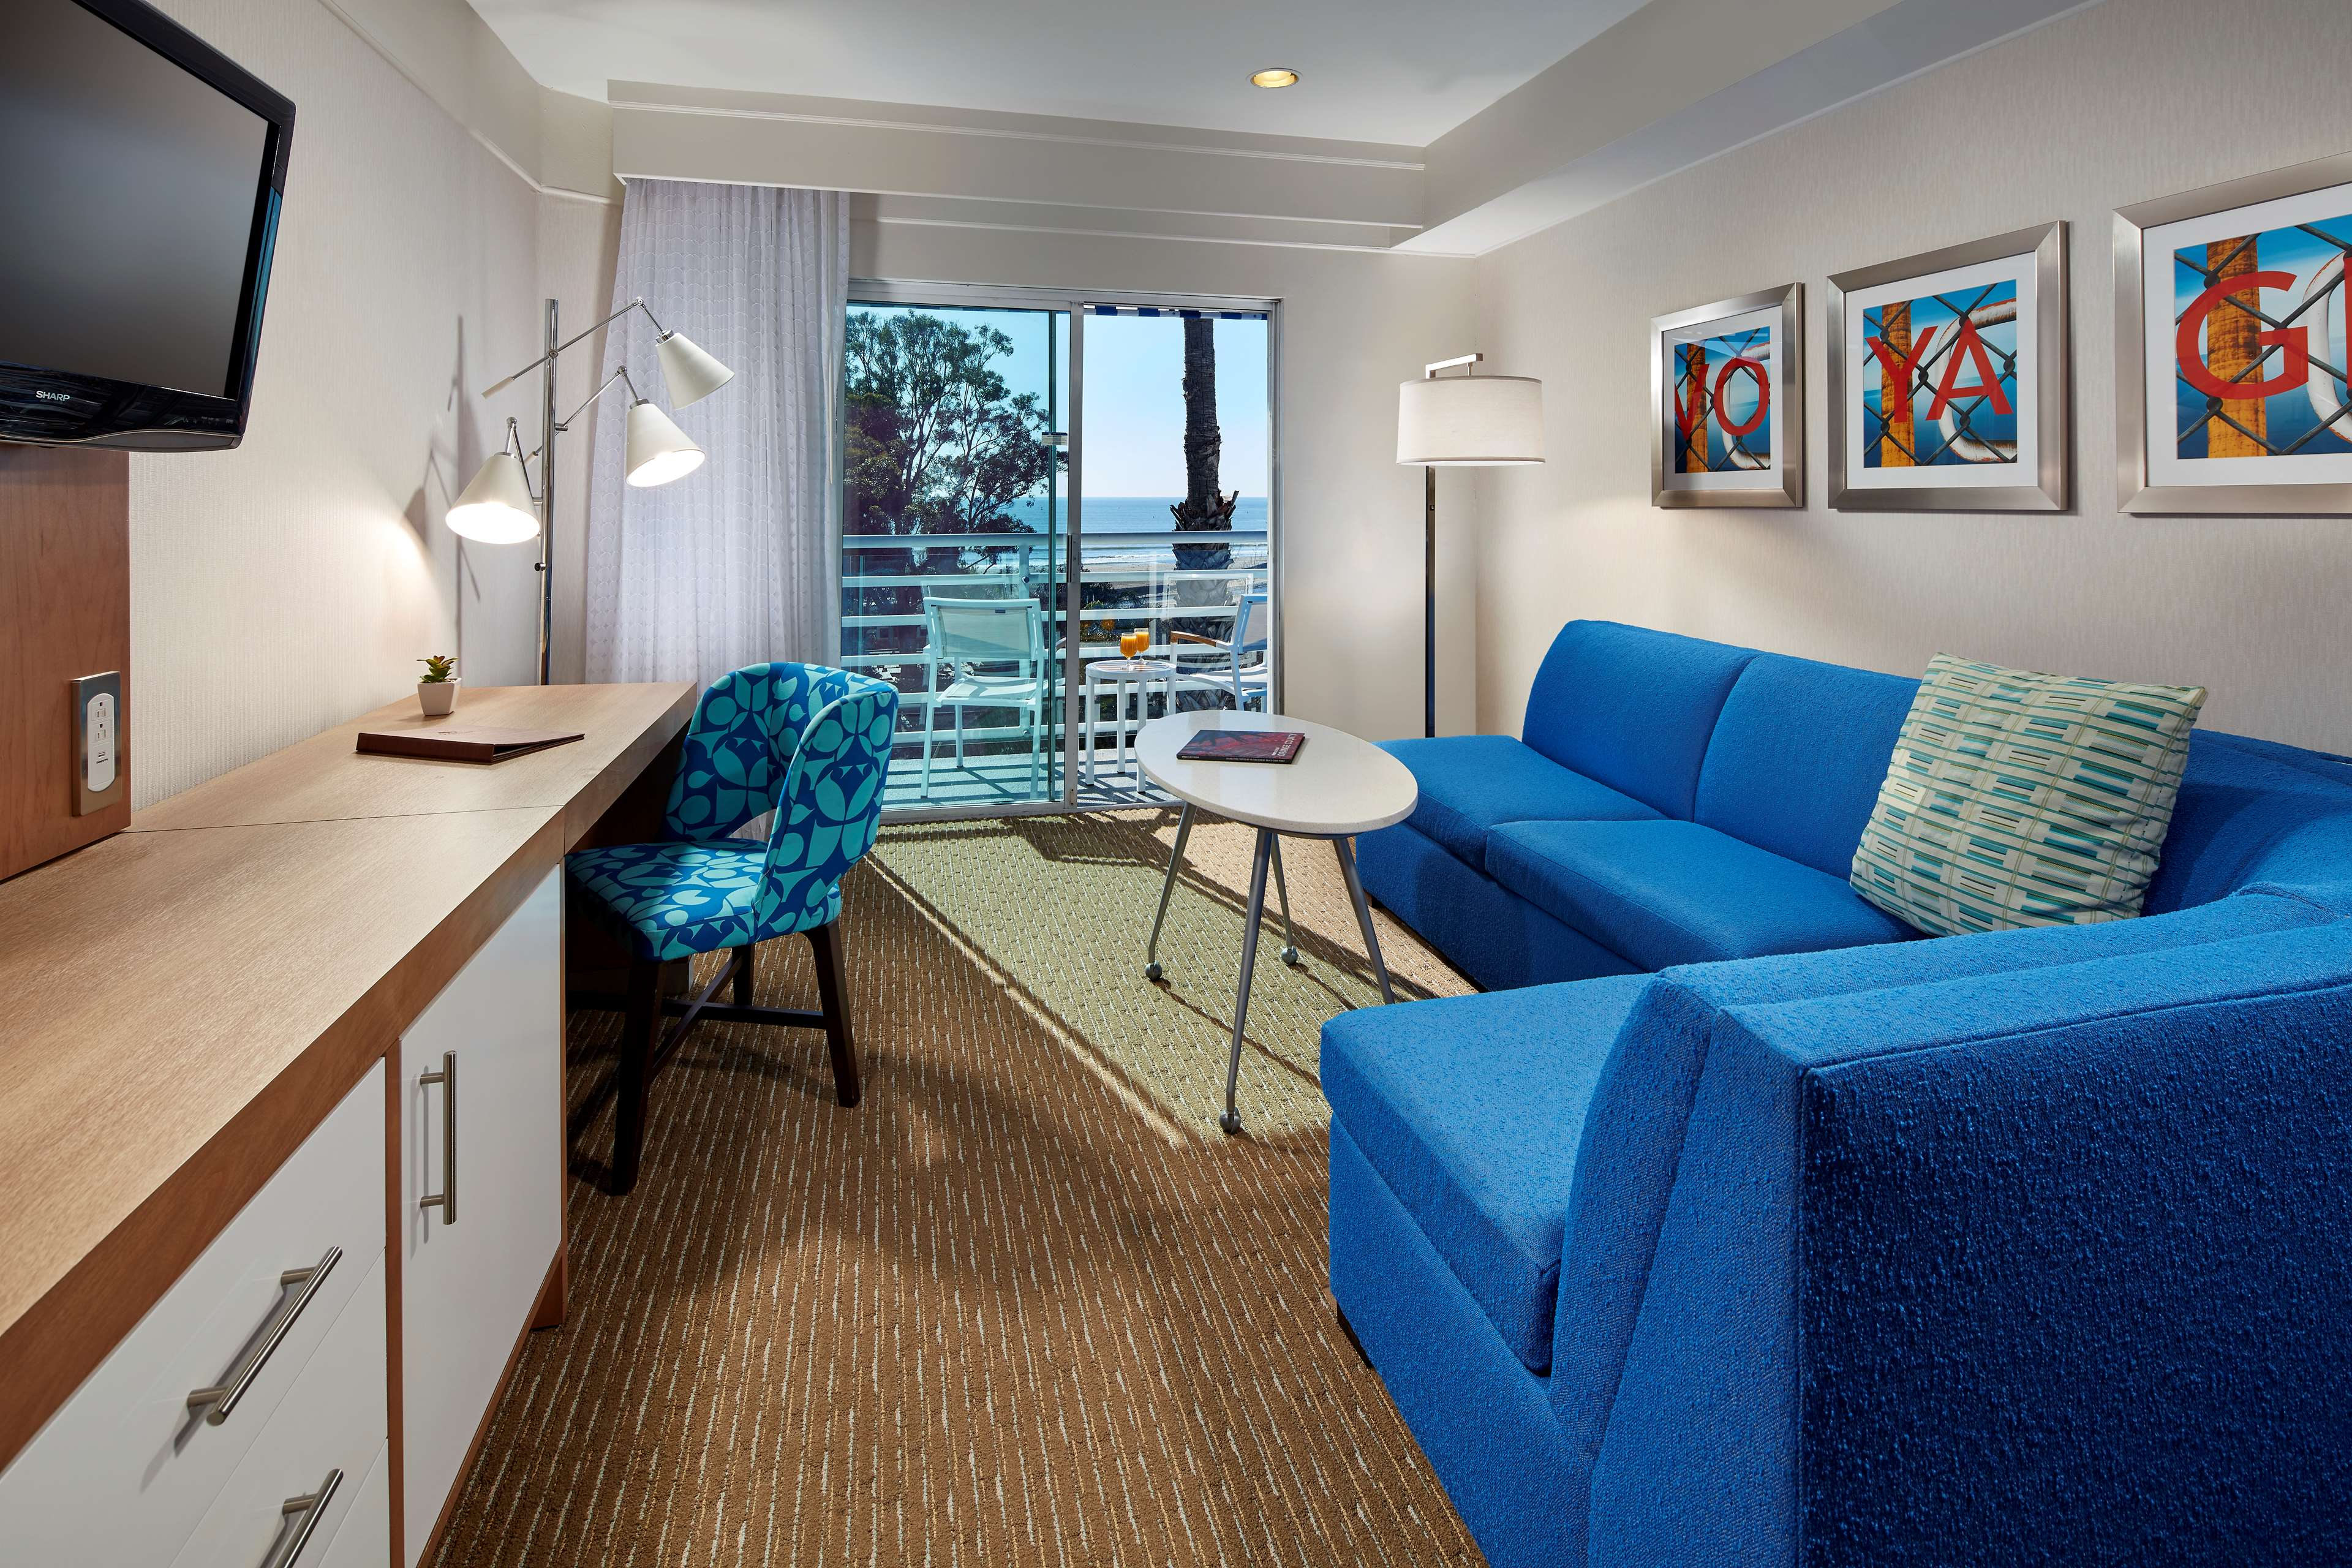 DoubleTree Suites by Hilton Hotel Doheny Beach - Dana Point image 12